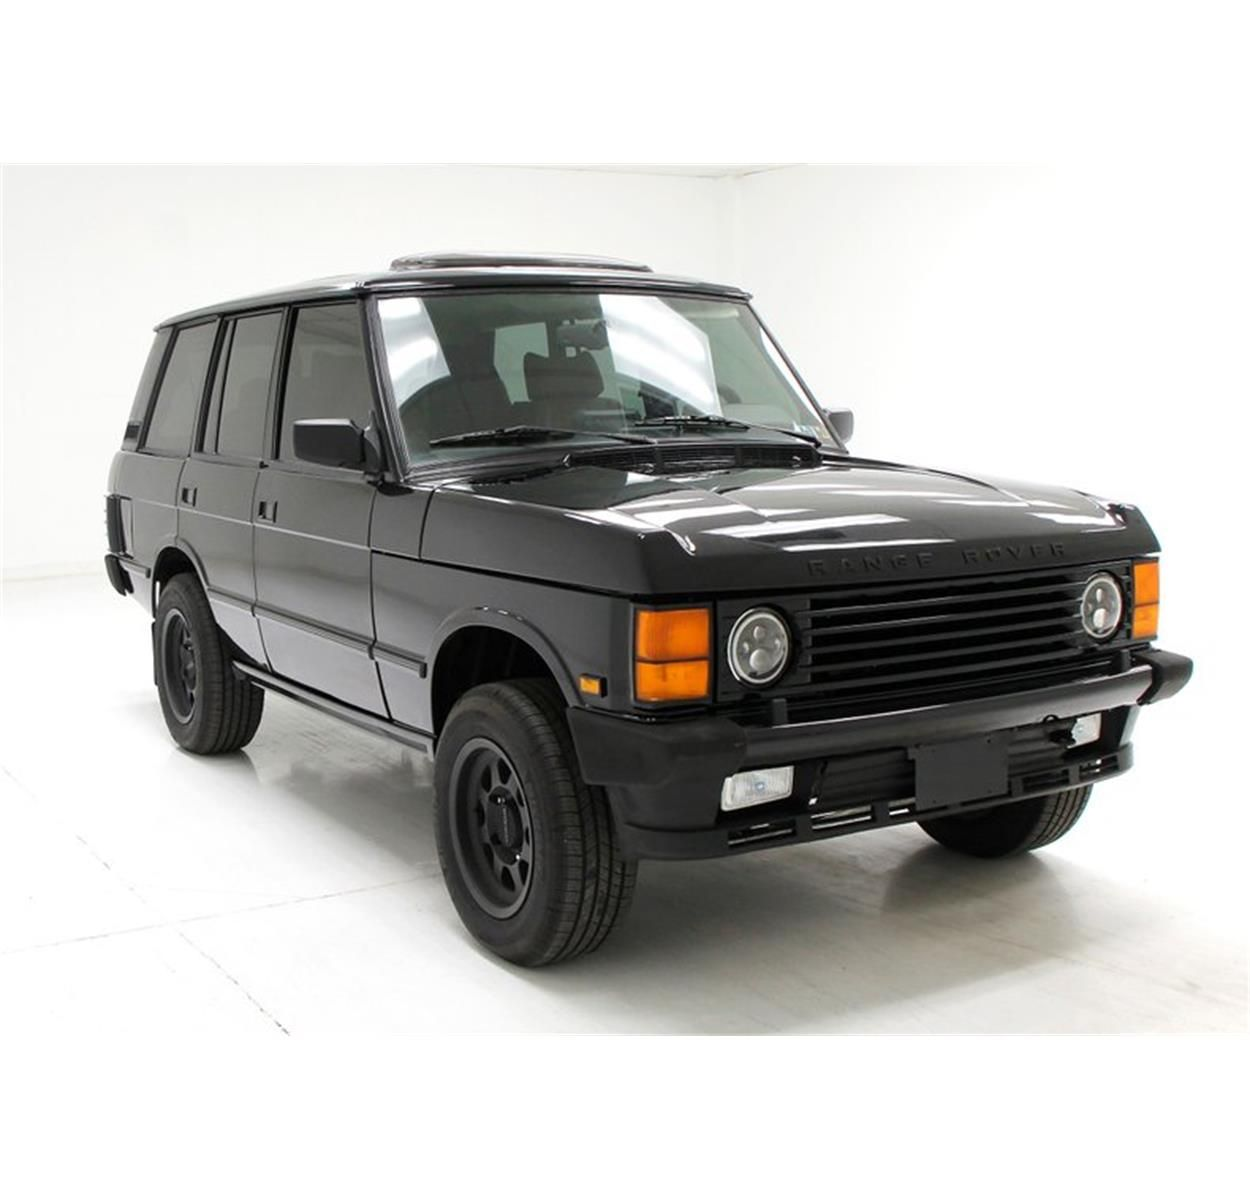 1990 Land Rover Range Rover Cc 1314200 For Sale In Morgantown Pennsylvania Land Rover Range Rover Classic Range Rover